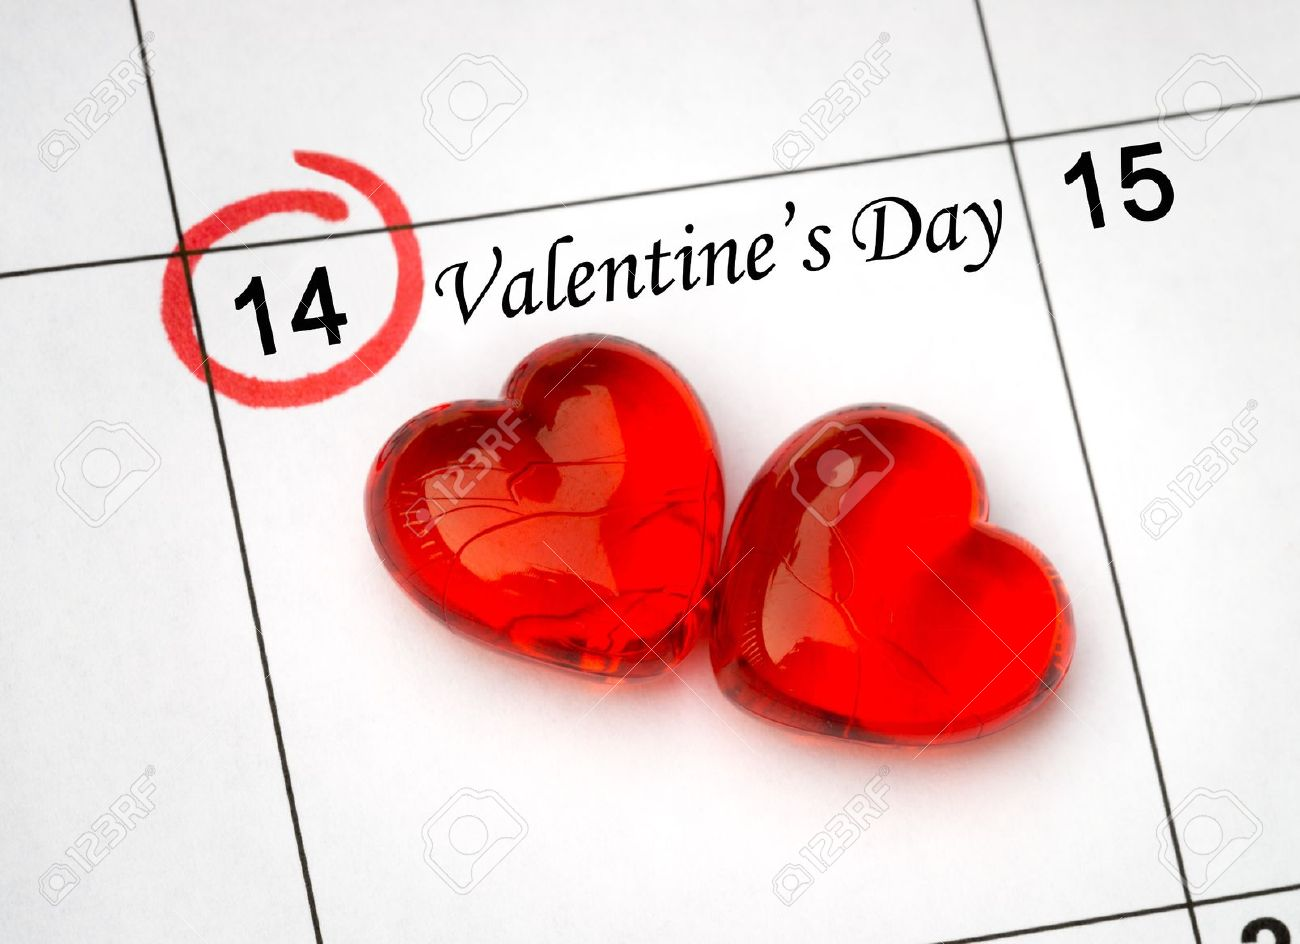 calendar page with the red hearts on february 14 of saint